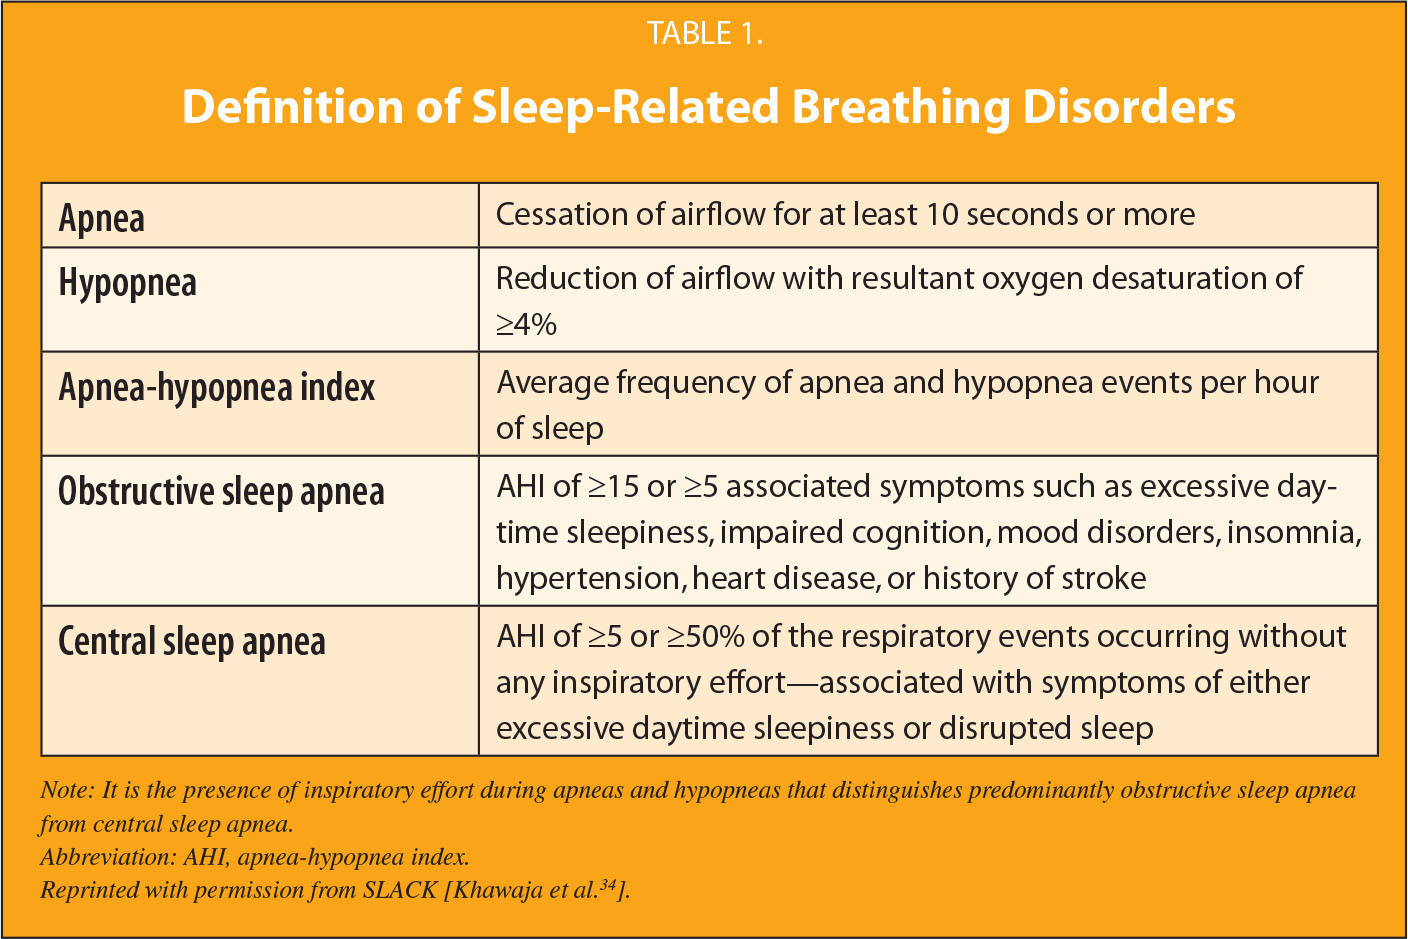 Definition of Sleep-Related Breathing Disorders